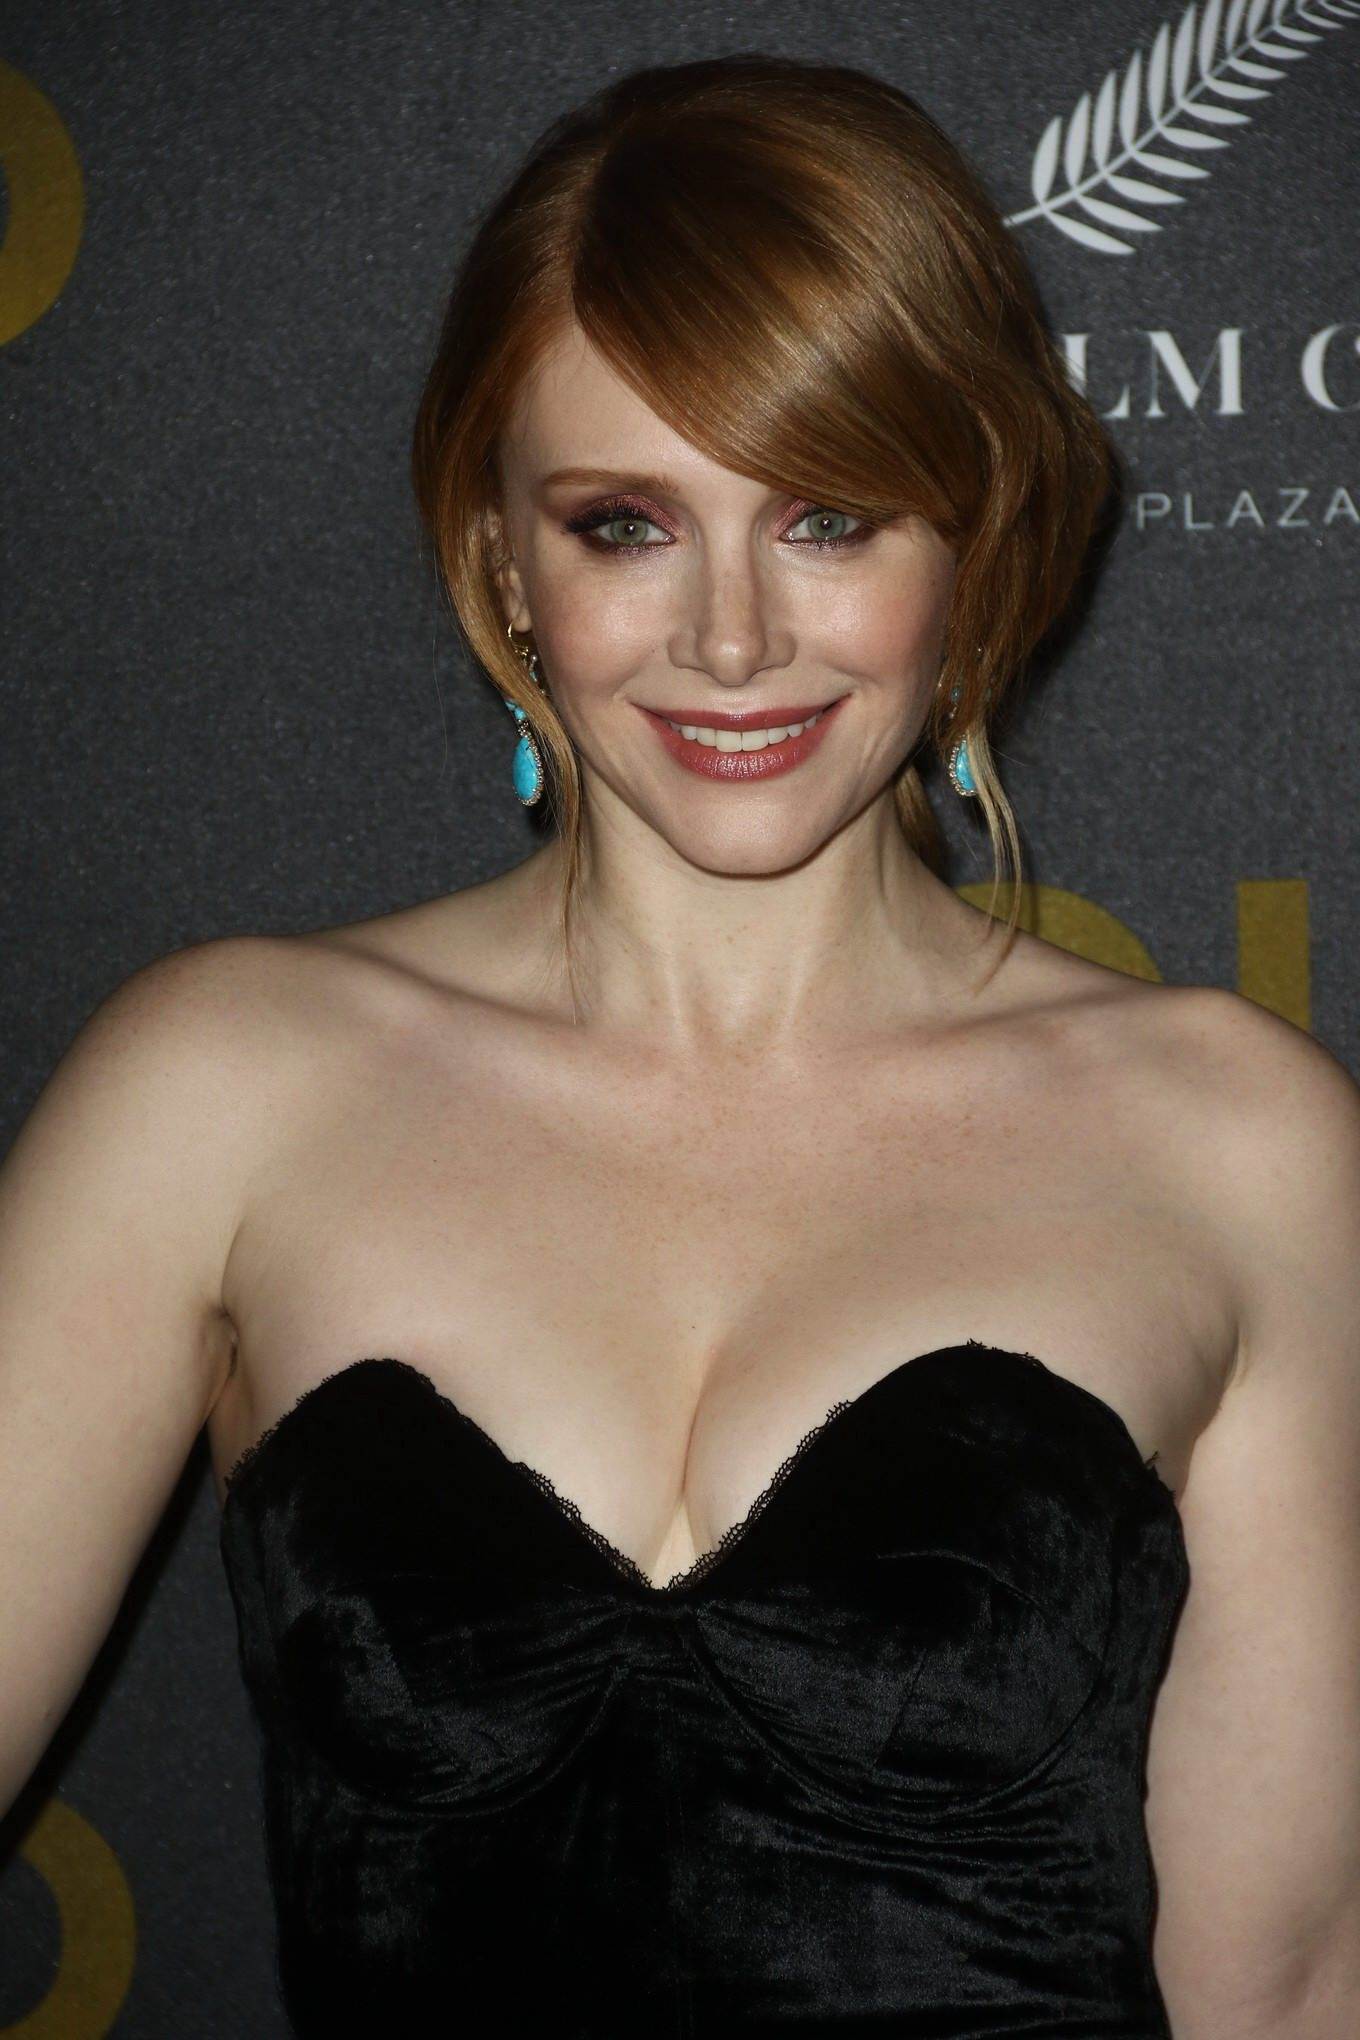 Who is bryce dallas howard dating 2